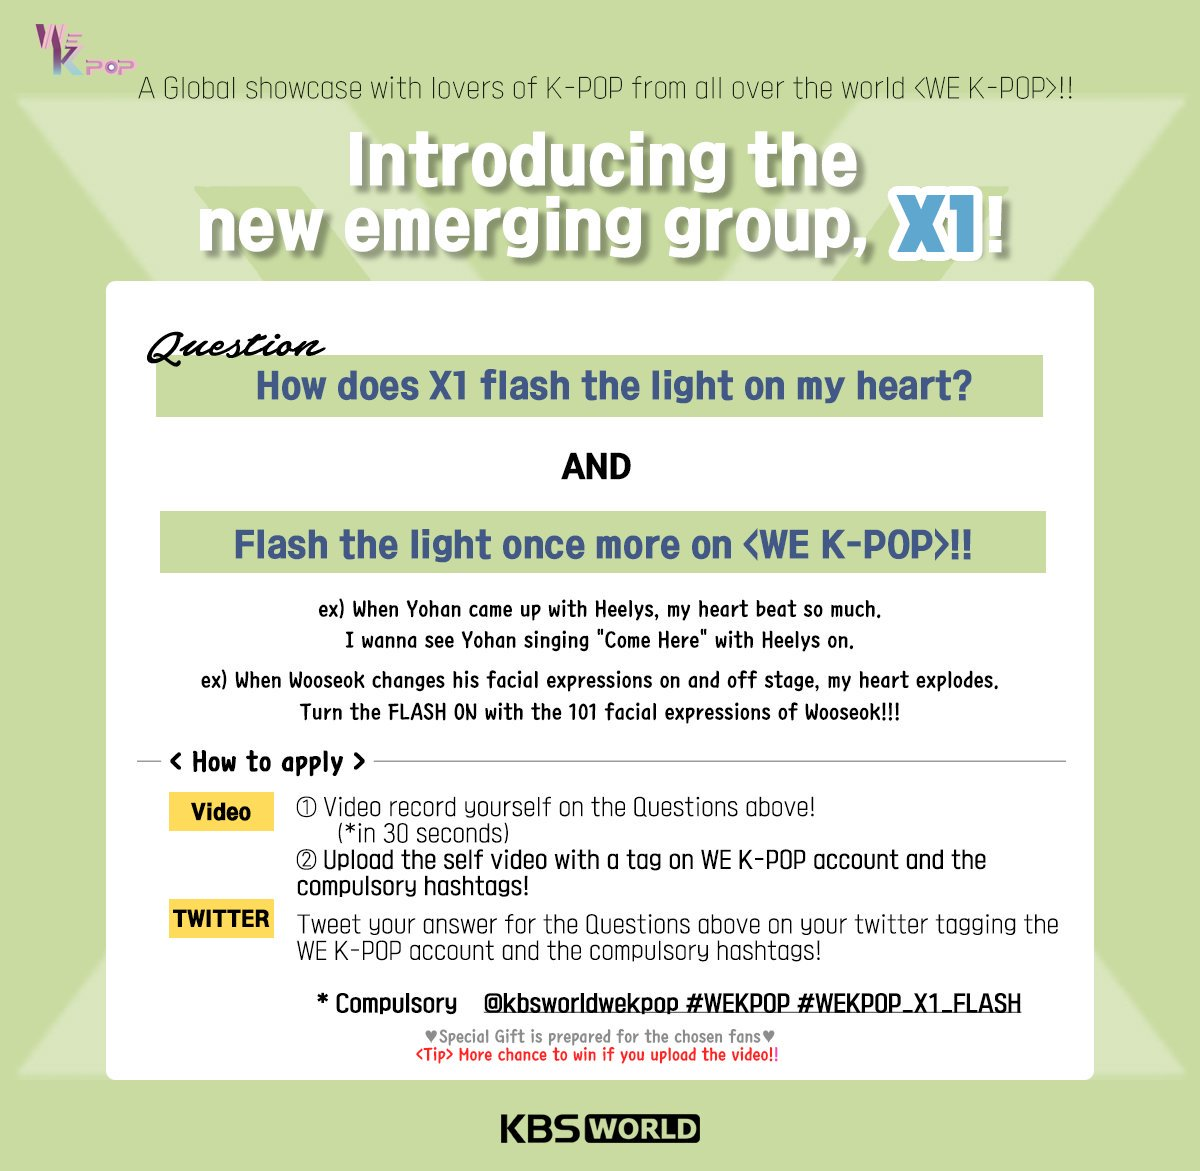 #KBSWorld Global #KPOP Show <WE K-POP> with #X1 🎶 Click the image to check the Descriptions!! #WeKpop #위케이팝 #X1 #kpop @x1official101